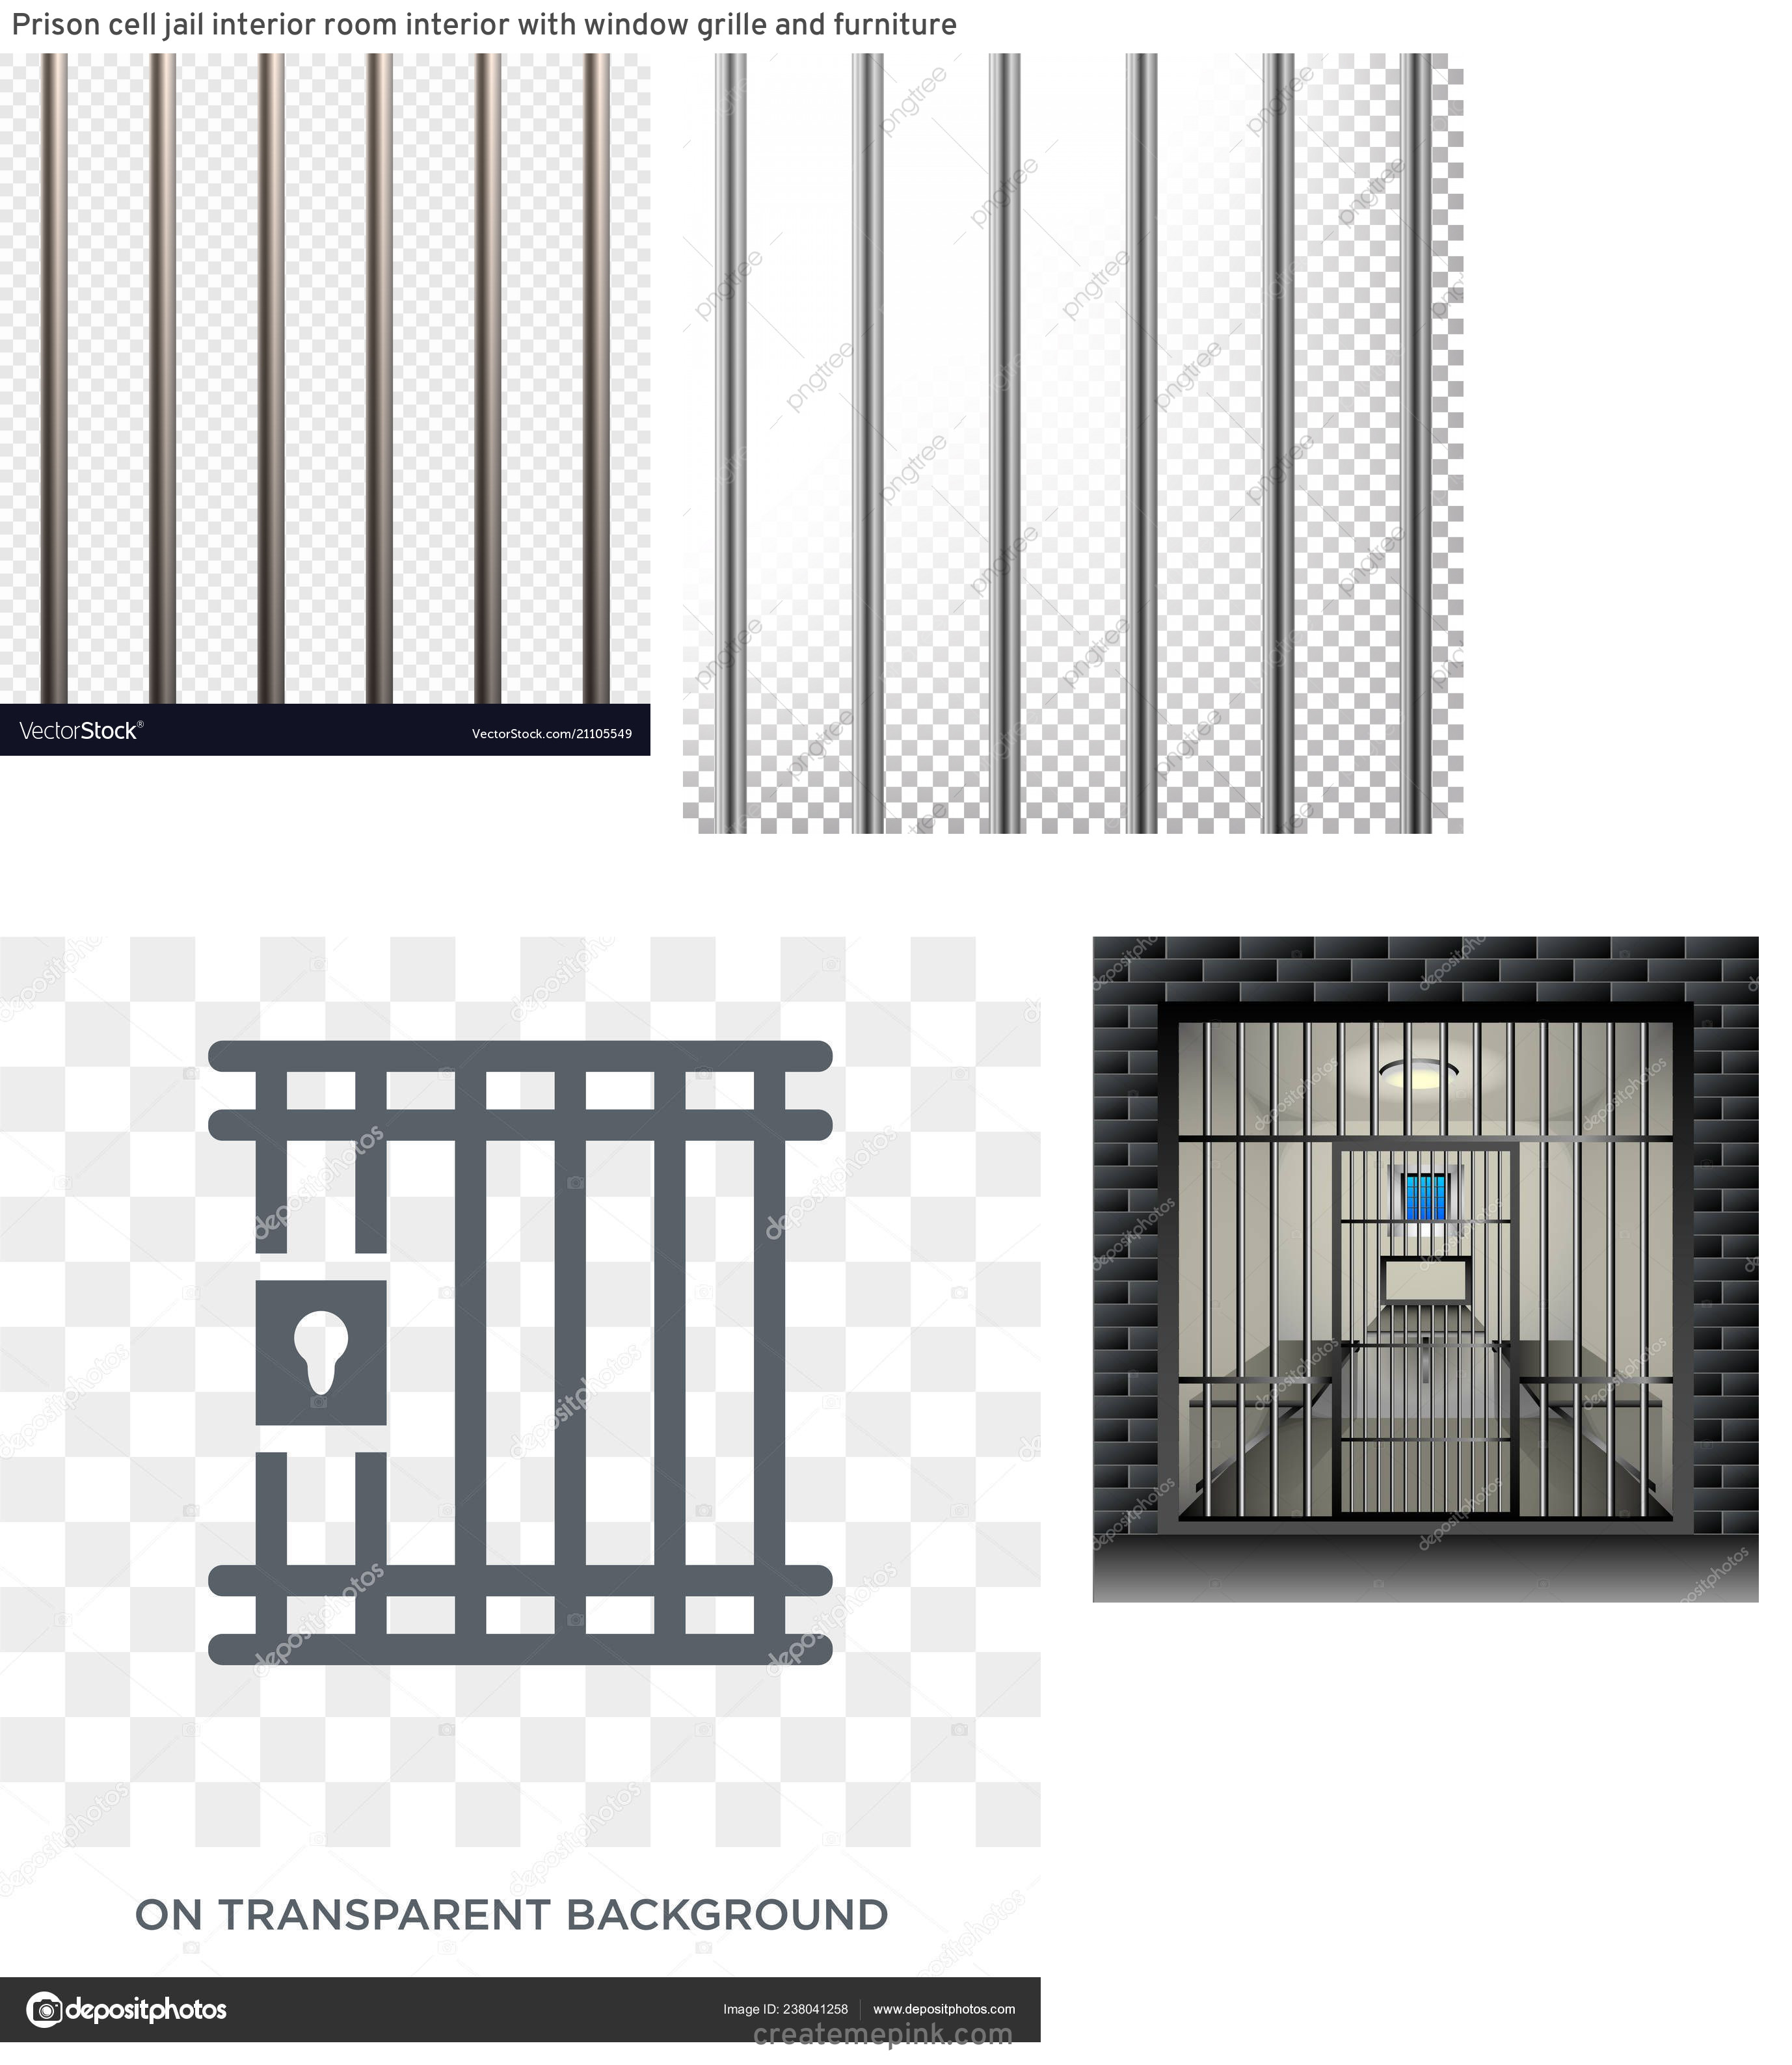 Jail Cell Vector: Prison Cell Jail Interior Room Interior With Window Grille And Furniture